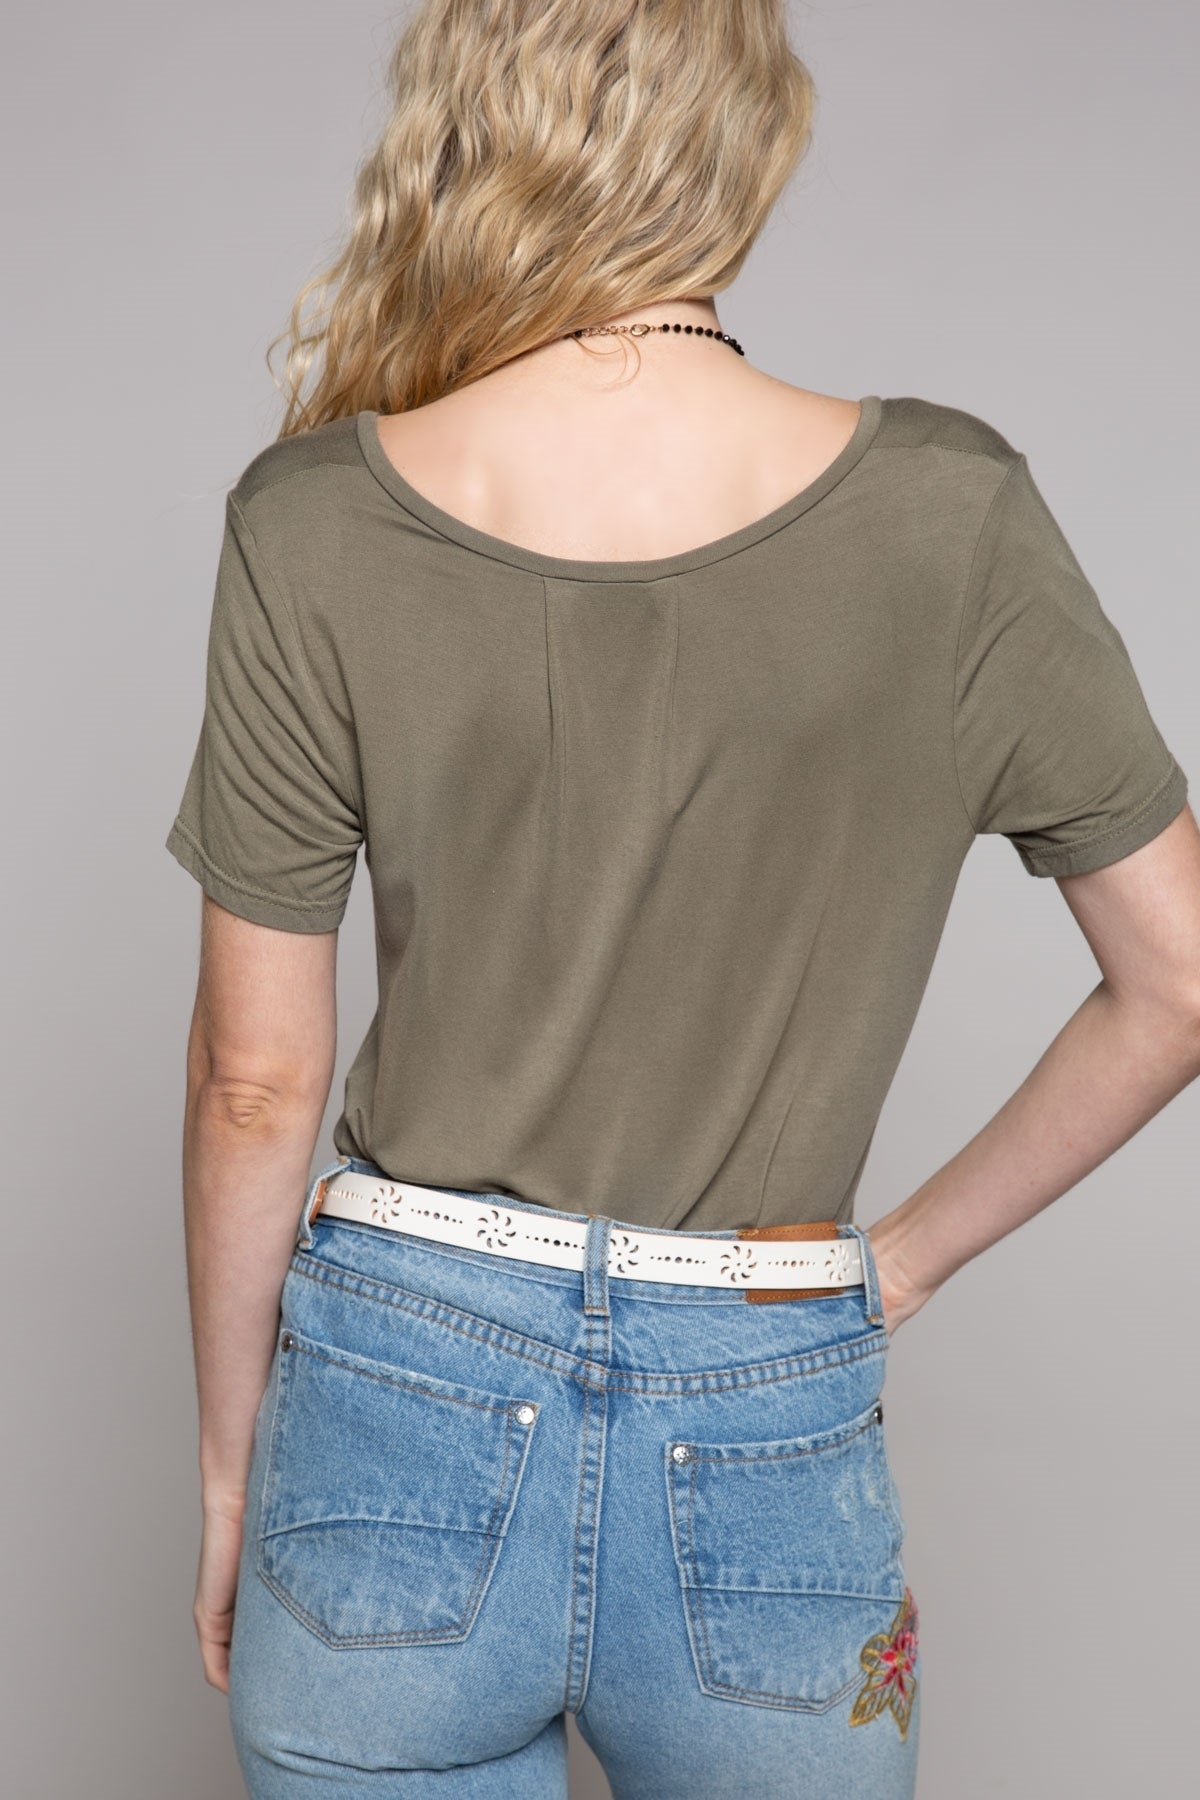 Bebe V Pocket Tee in Vintage Olive